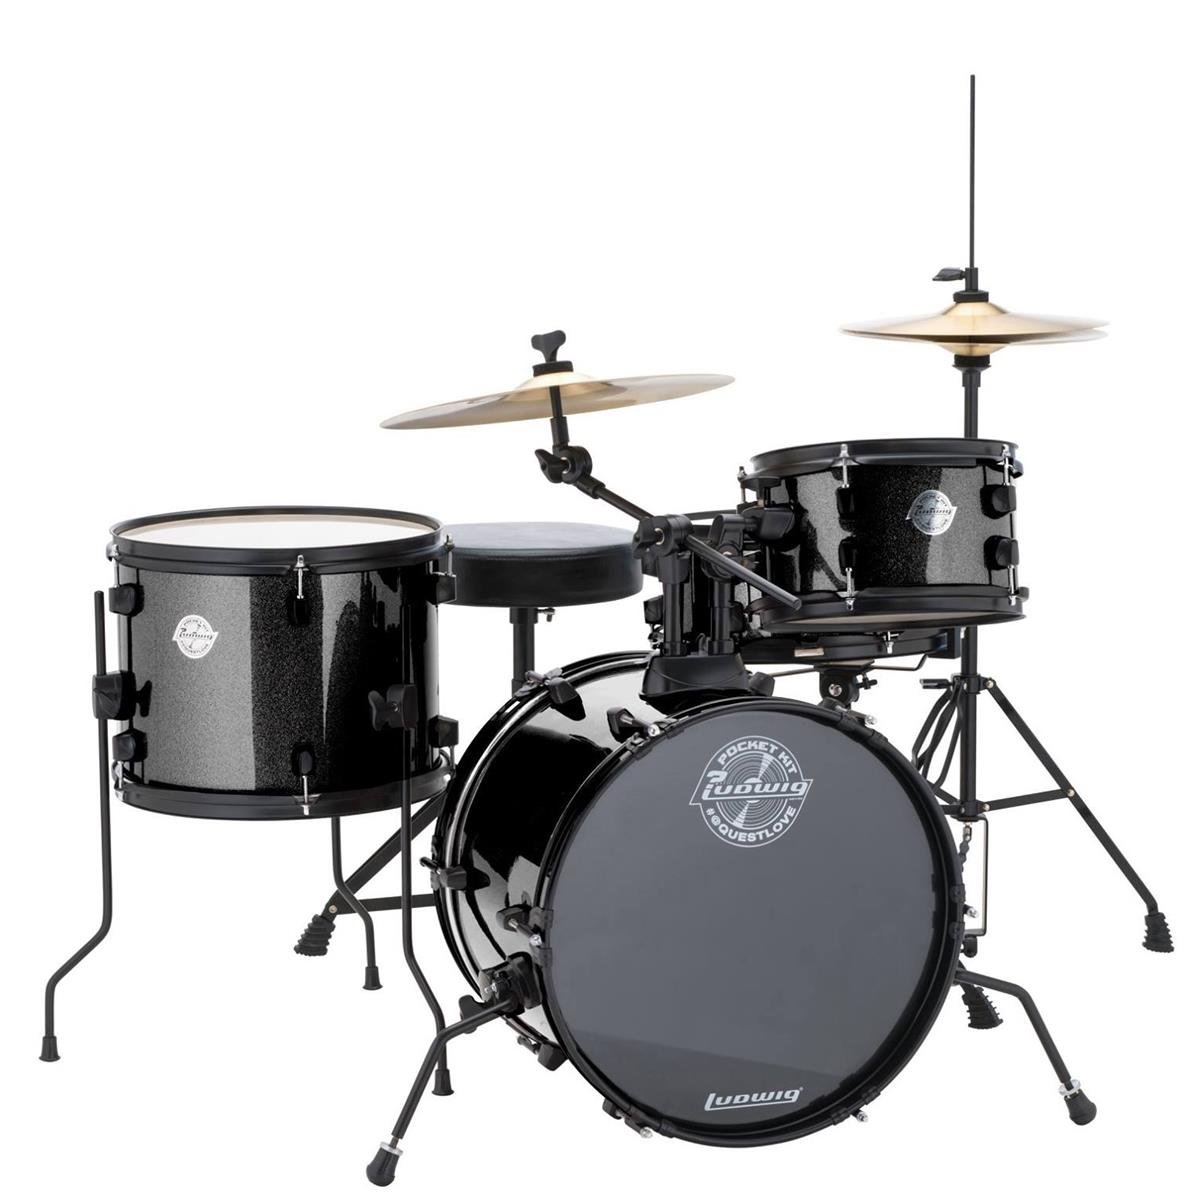 Ludwig LC178X016 Questlove Pocket Kit 4-Piece Drum Set-Black Sparkle Finish, inch (